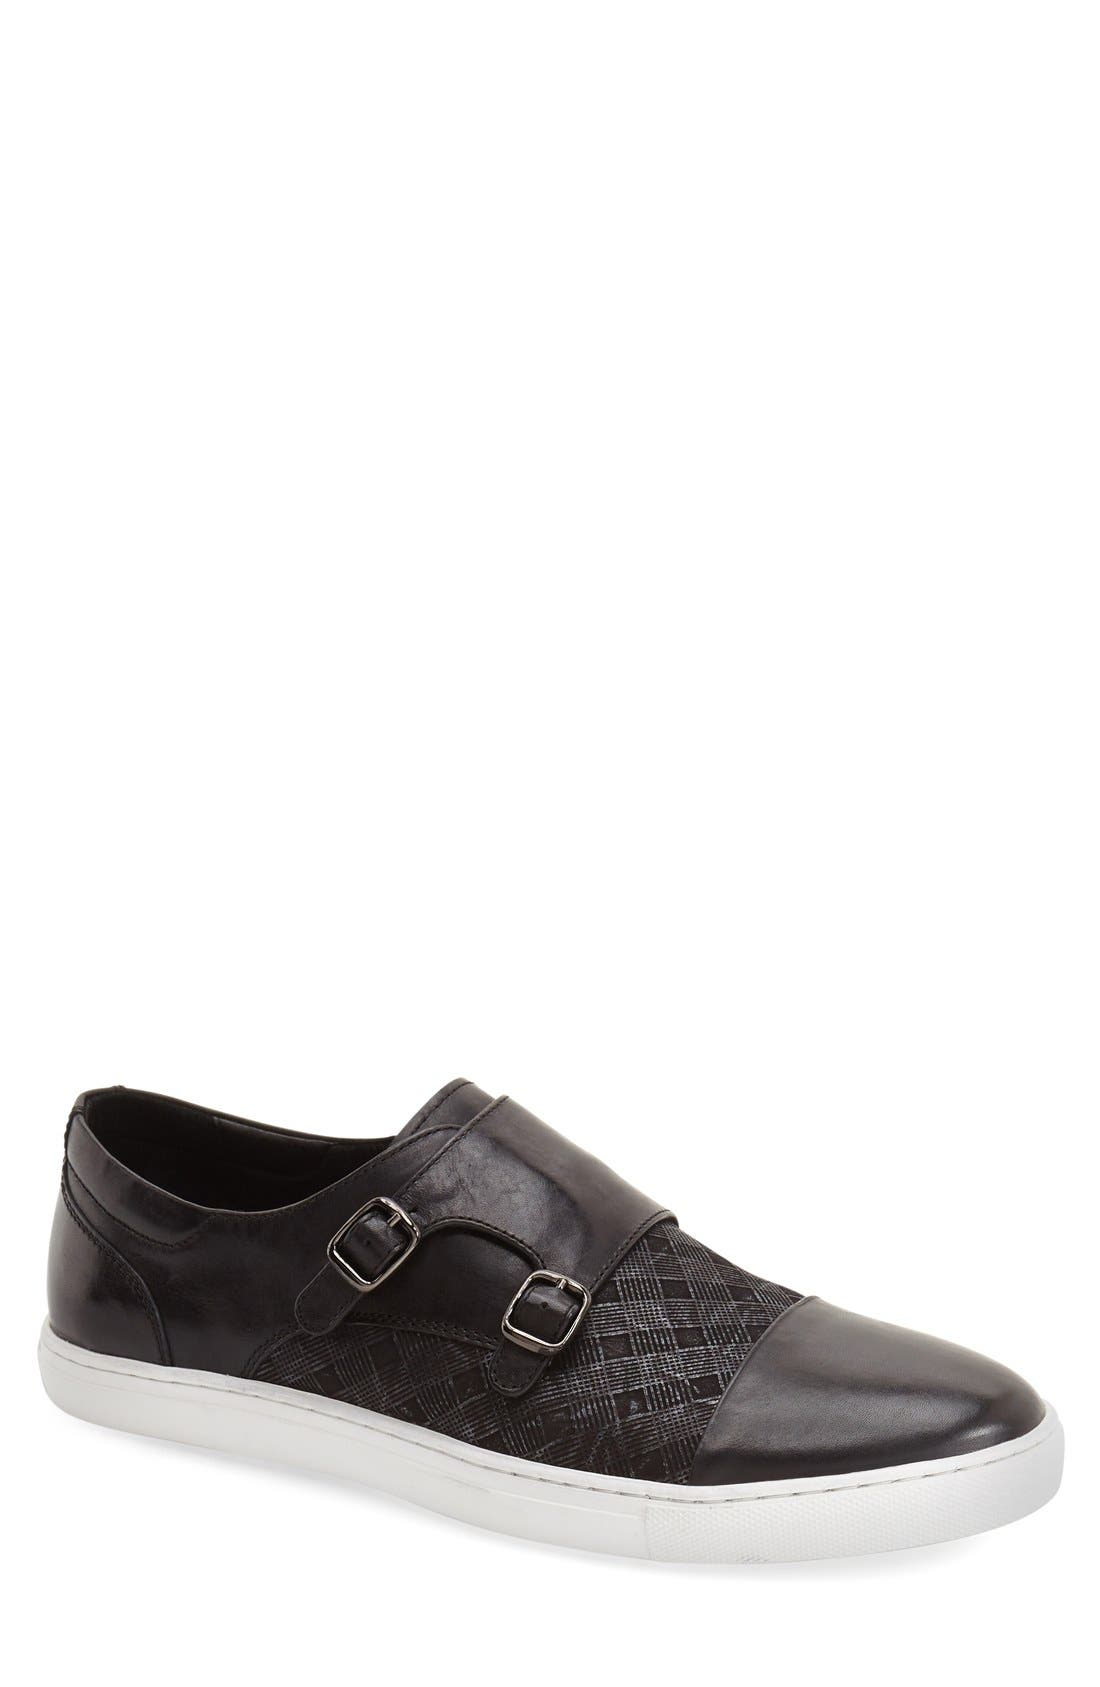 'Mix' Slip-On,                         Main,                         color, 001